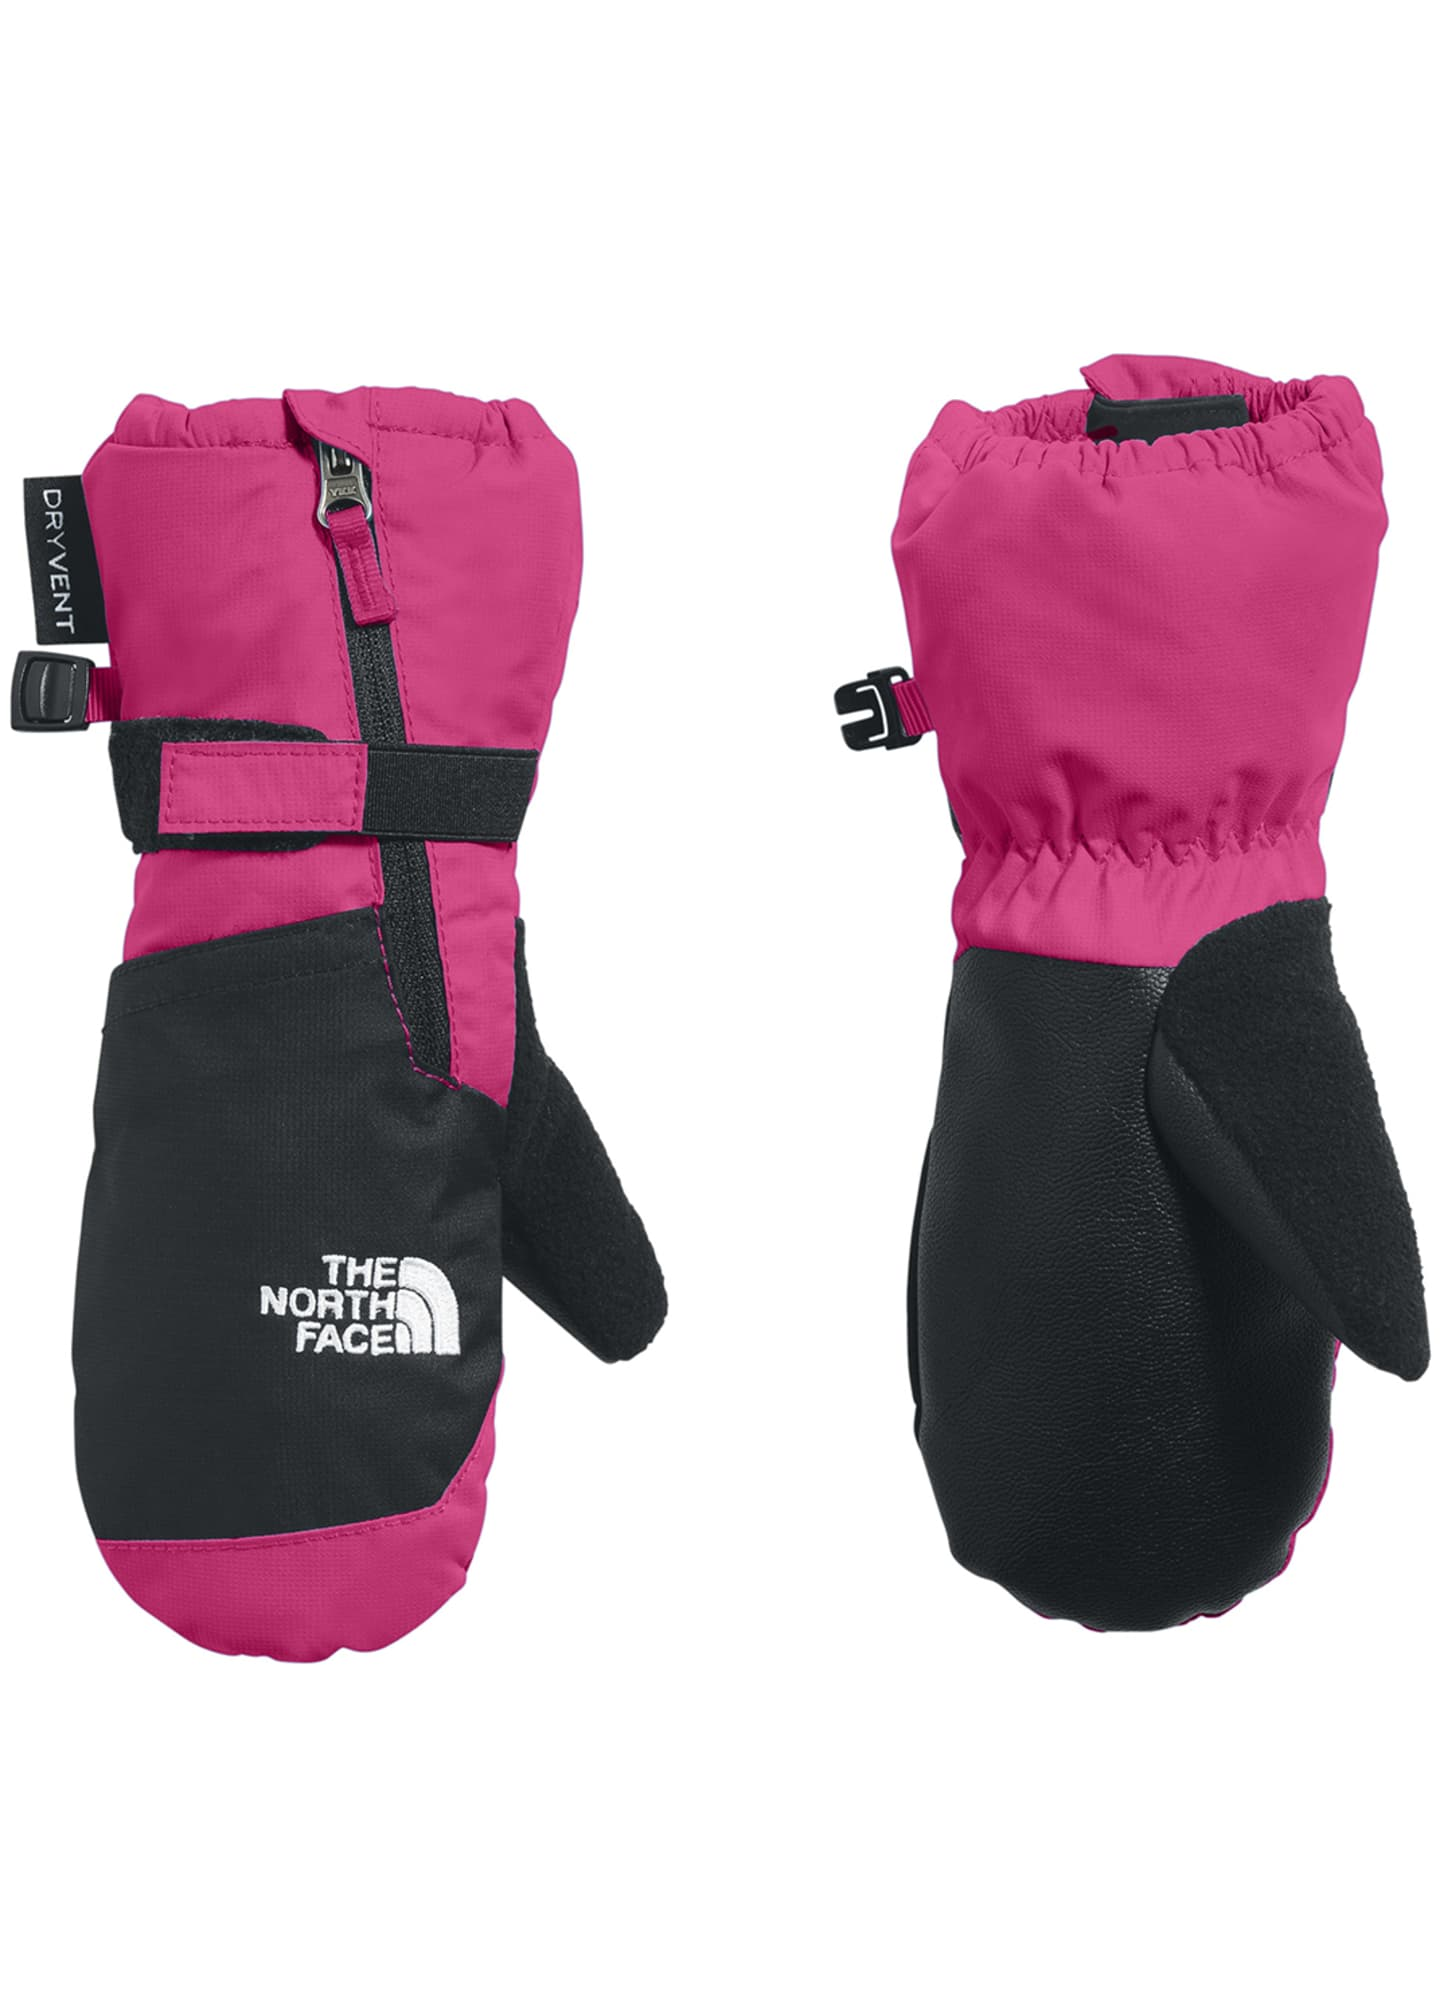 The North Face Toddler Mittens, Size